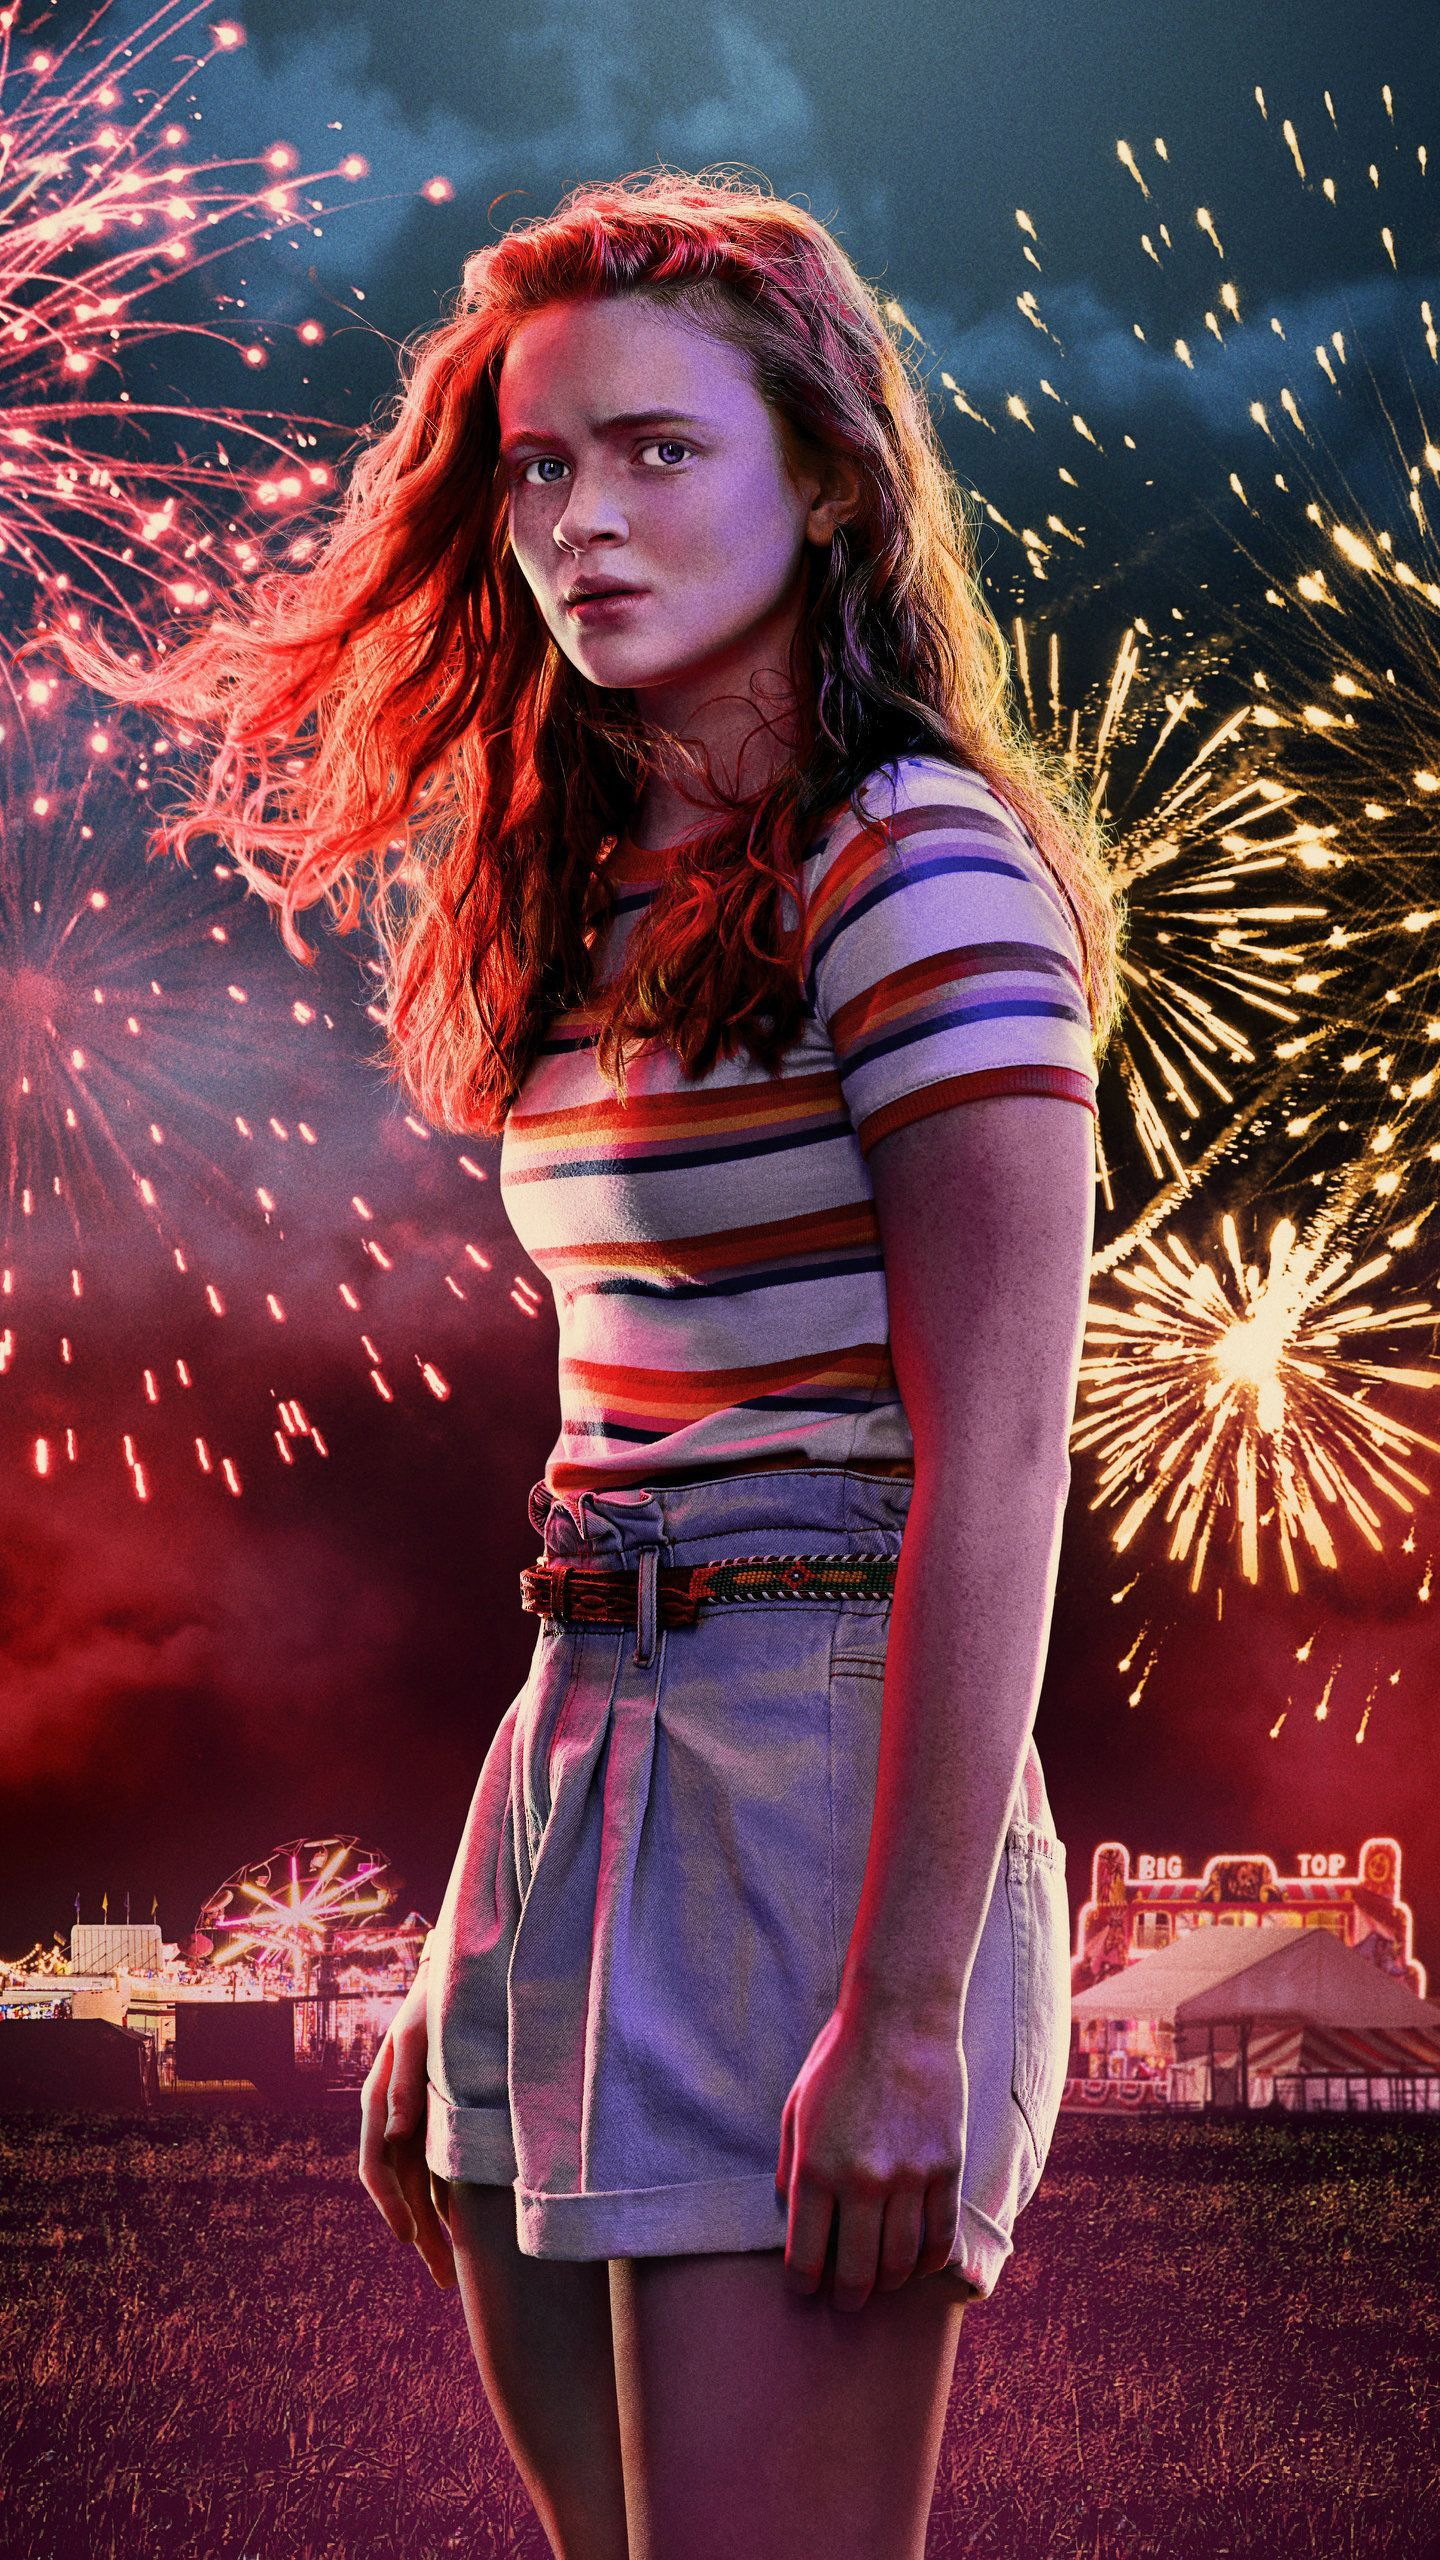 Max In Stranger Things Season 3 2019 5k Hd Tv Shows Wallpapers Photos And Pictures 111816003 Stranger Things Max Stranger Things Outfit Stranger Things Poster